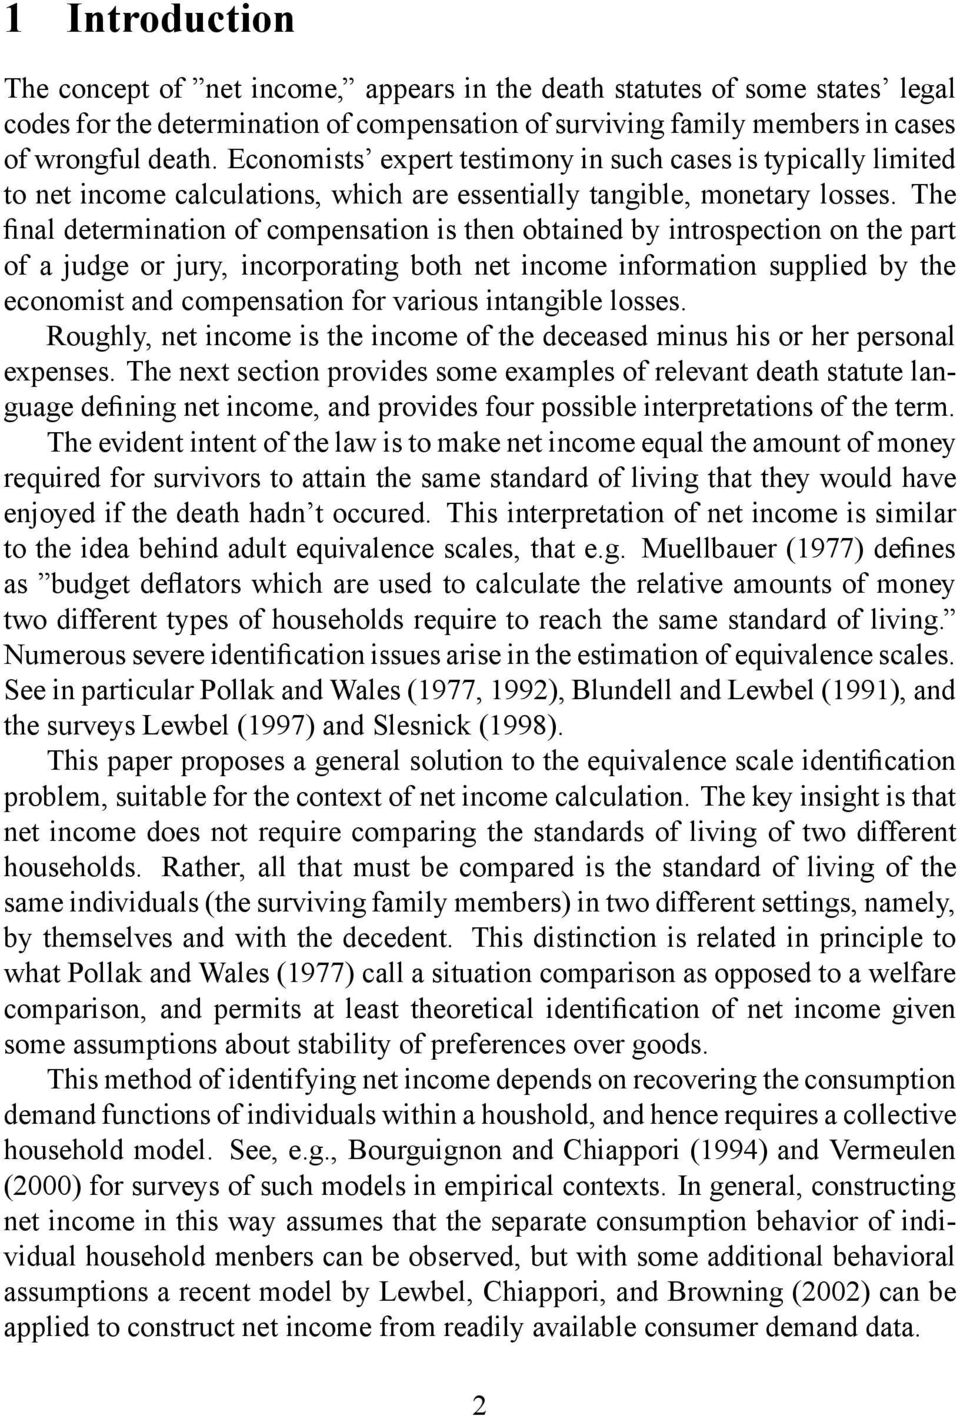 The Þnal determination of compensation is then obtained by introspection on the part of a judge or jury, incorporating both net income information supplied by the economist and compensation for